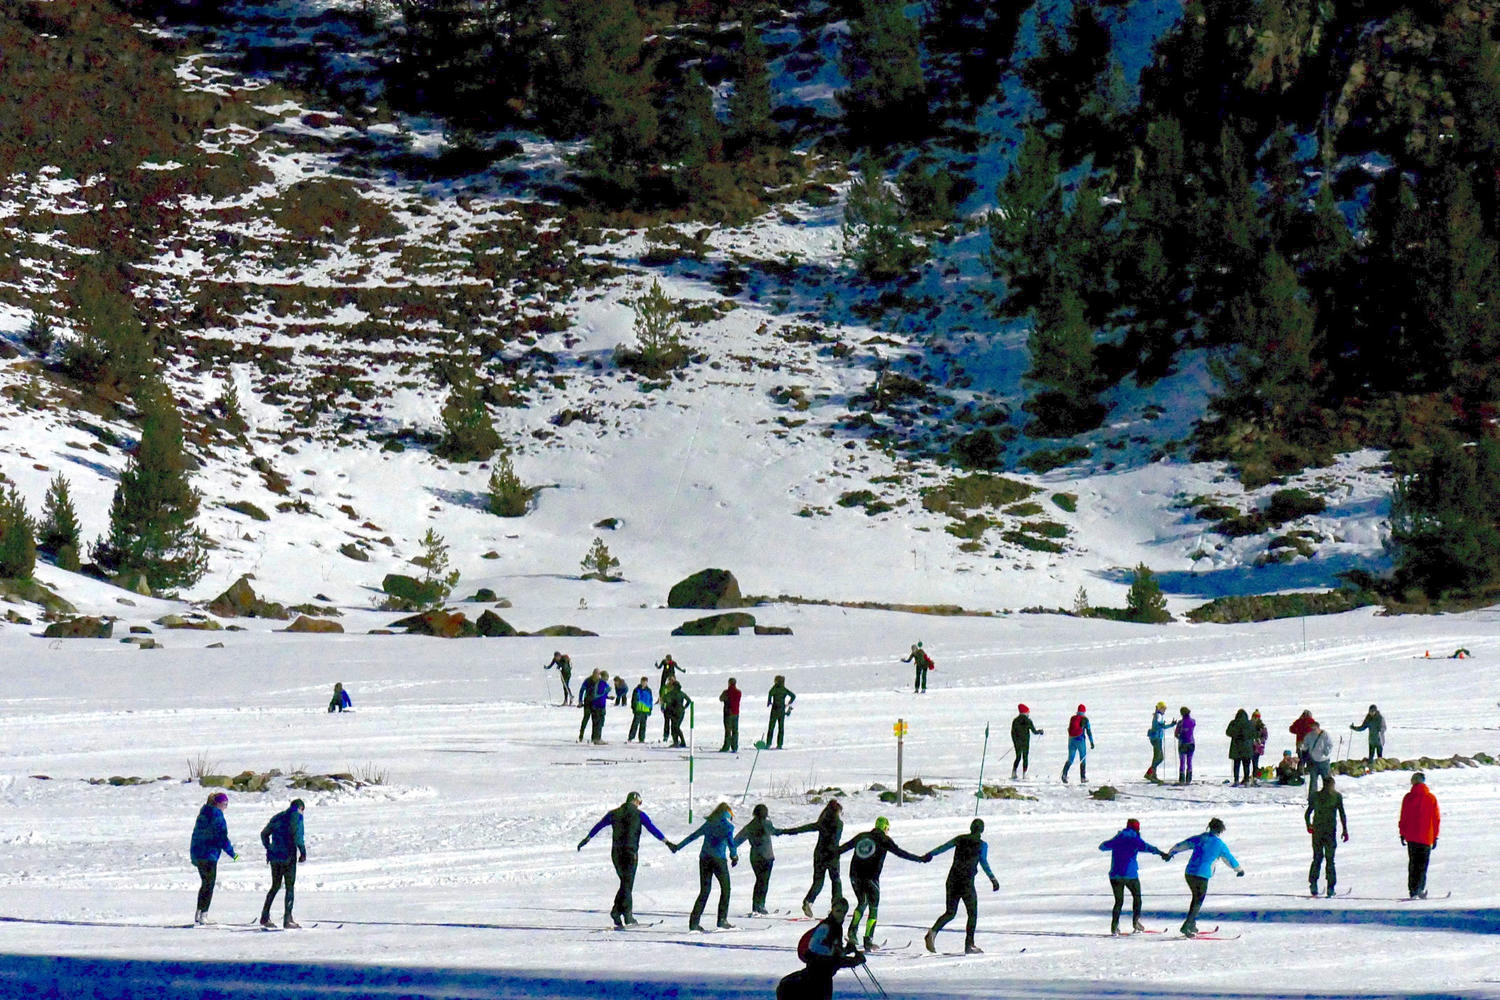 The flat valley of Llanos del Hospital is ideal for learning nordic skiing